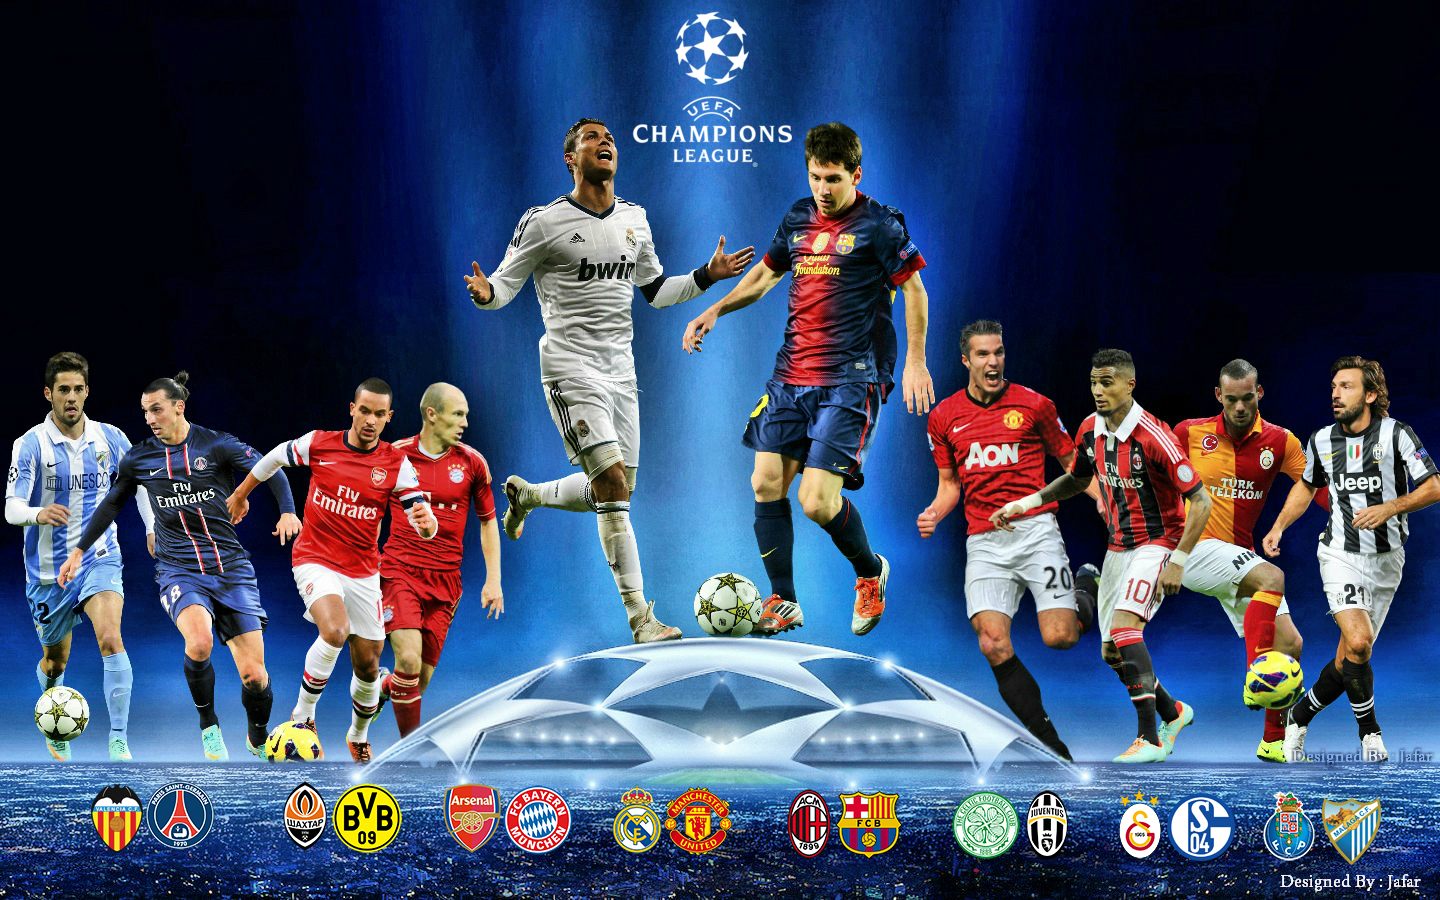 UEFA Champions League: UEFA Champions League Wallpaper HD